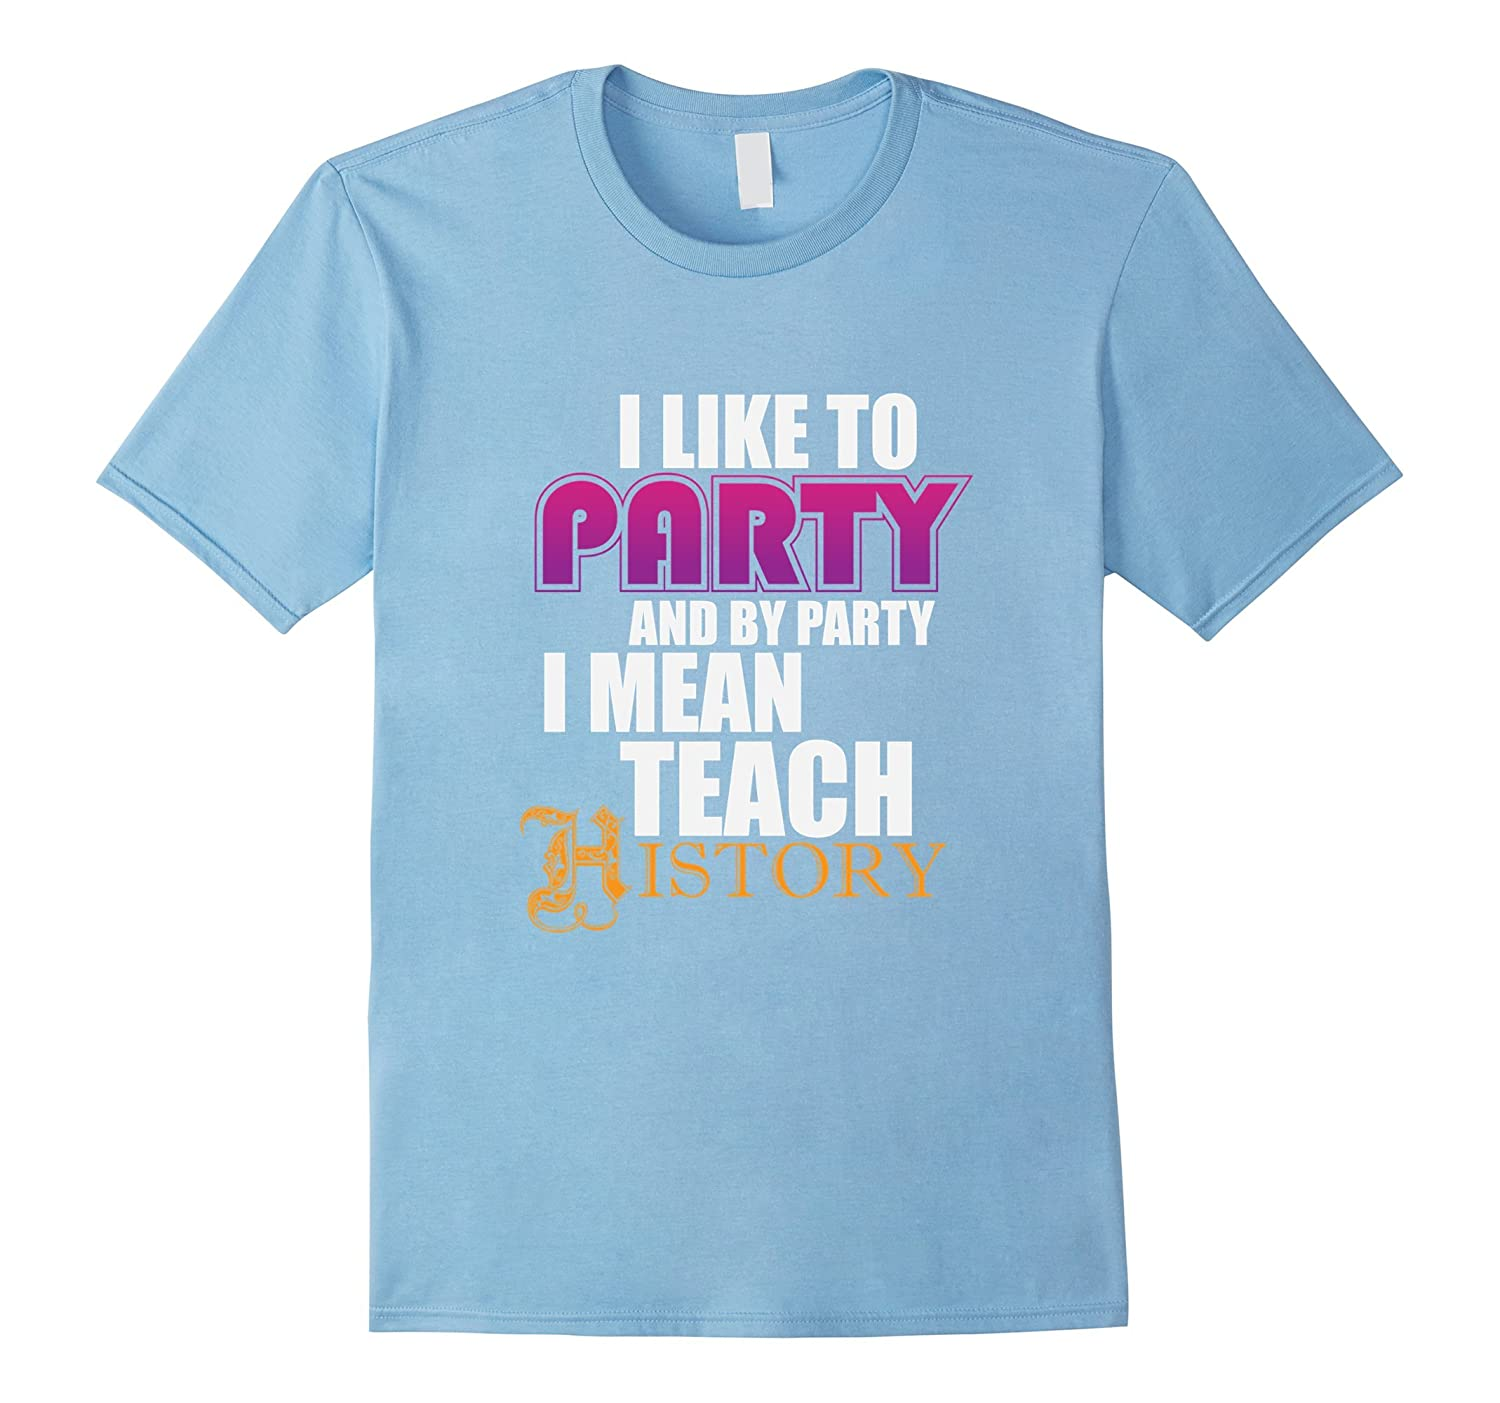 History Teacher T-shirt -I like to Party and by party I mean-FL